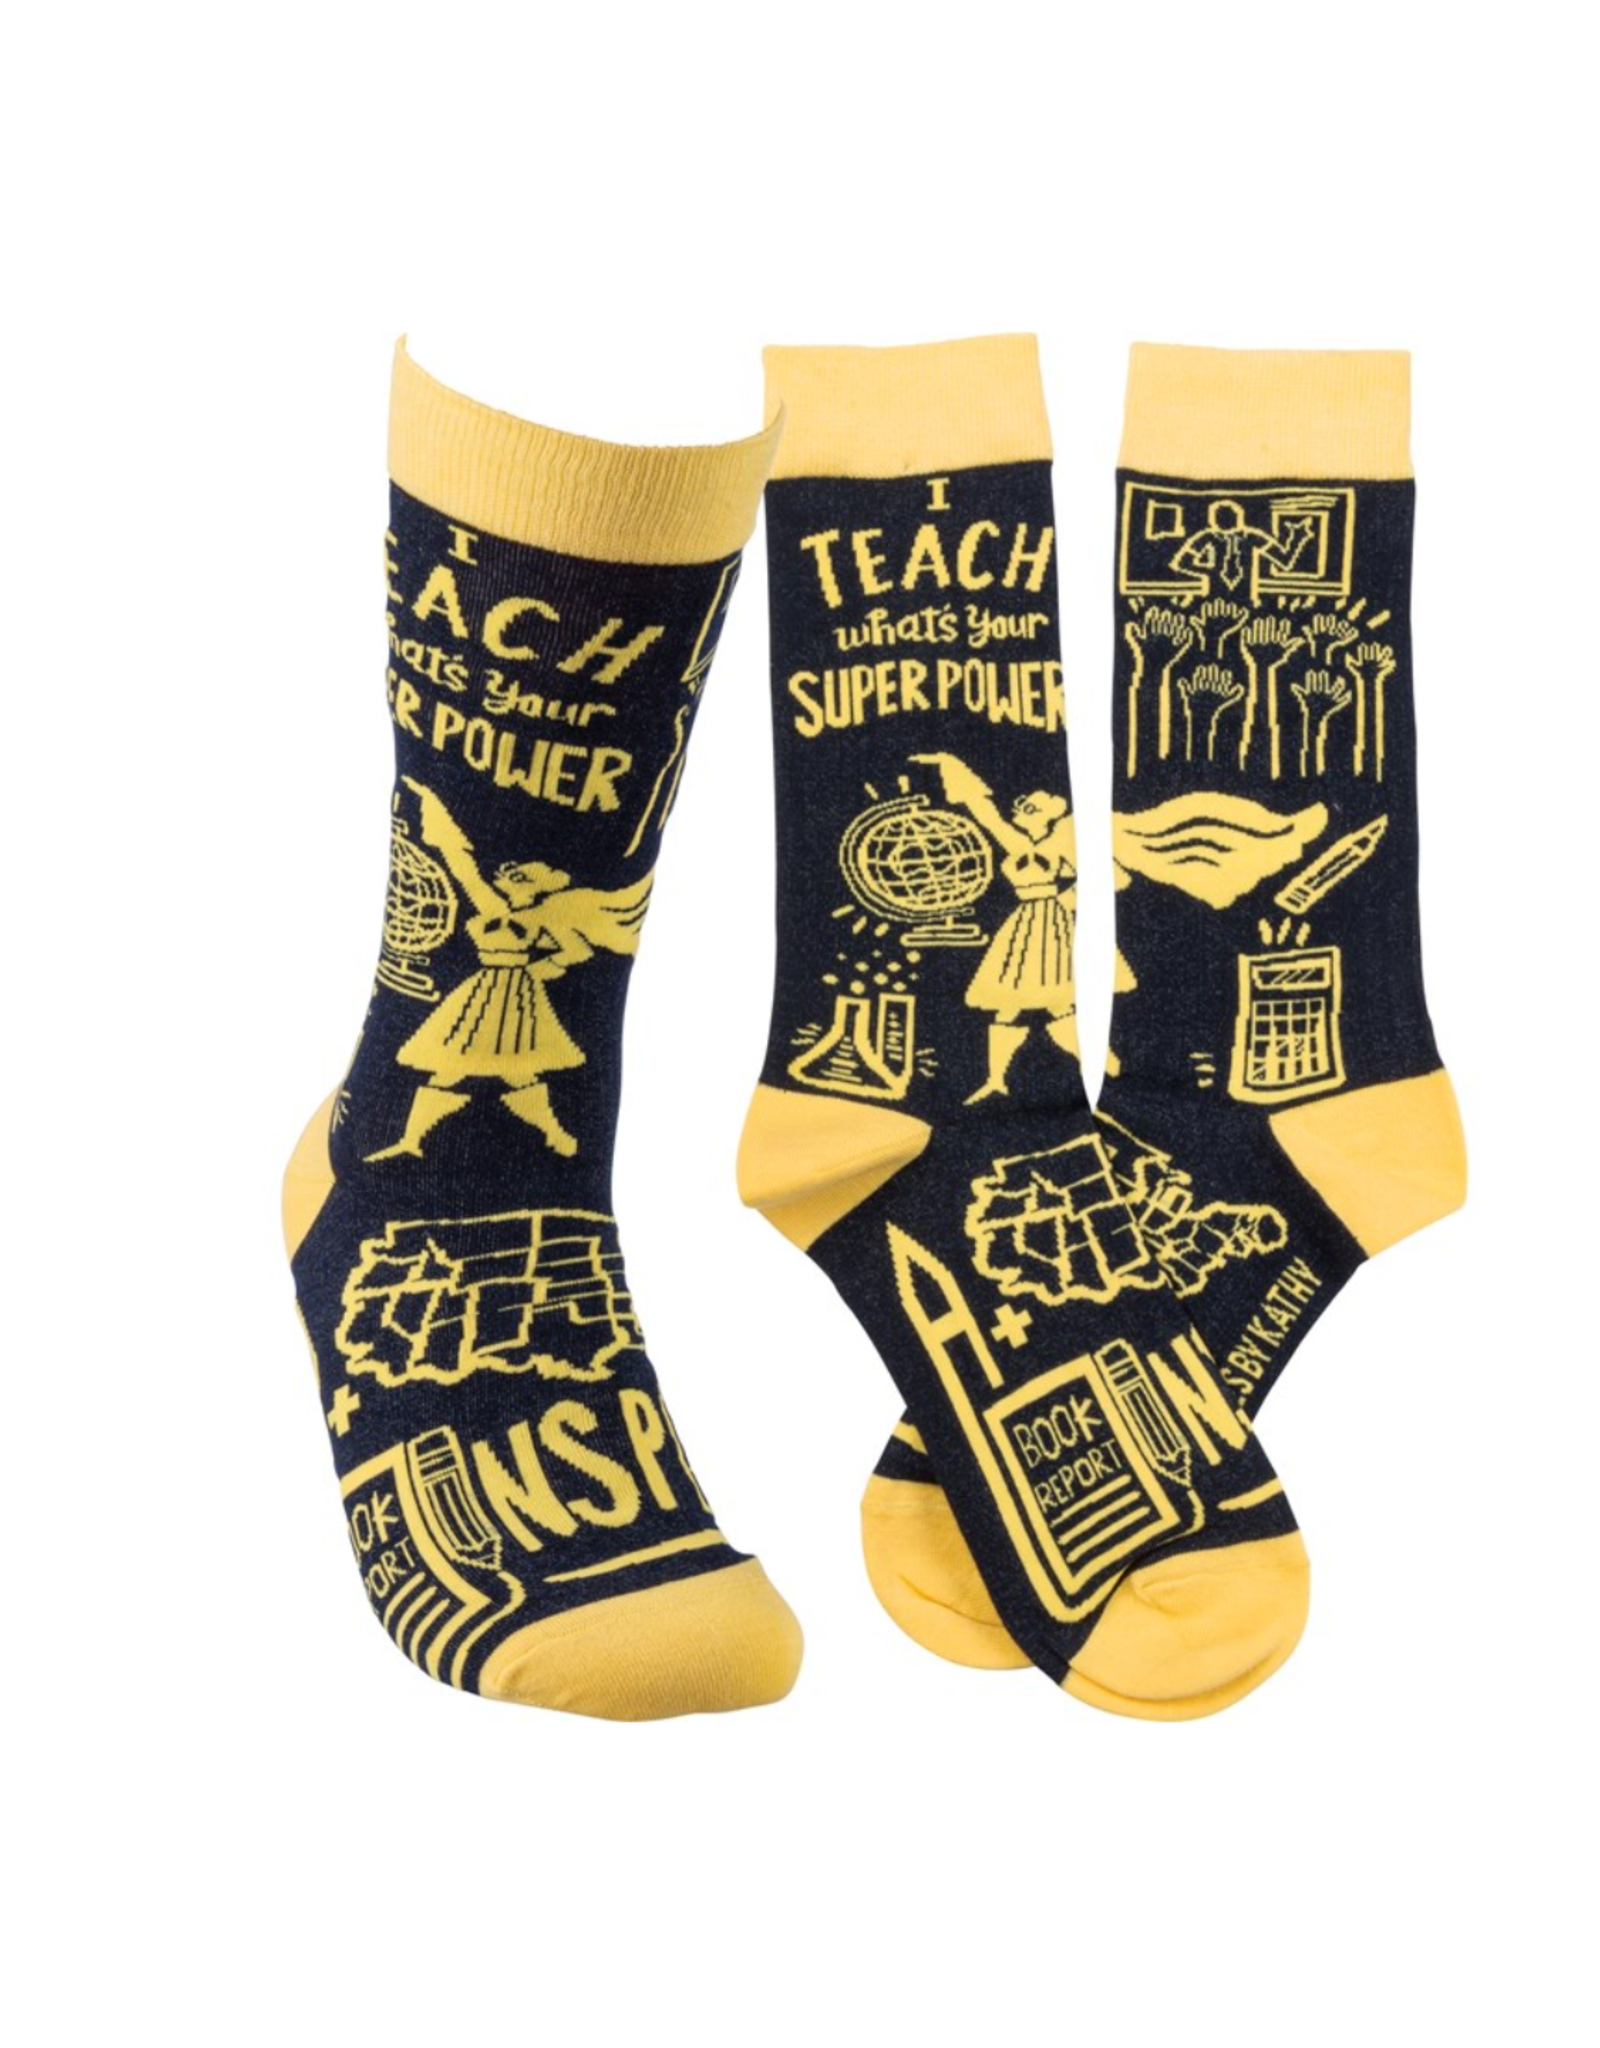 I Teach, What's Your Superpower? Socks